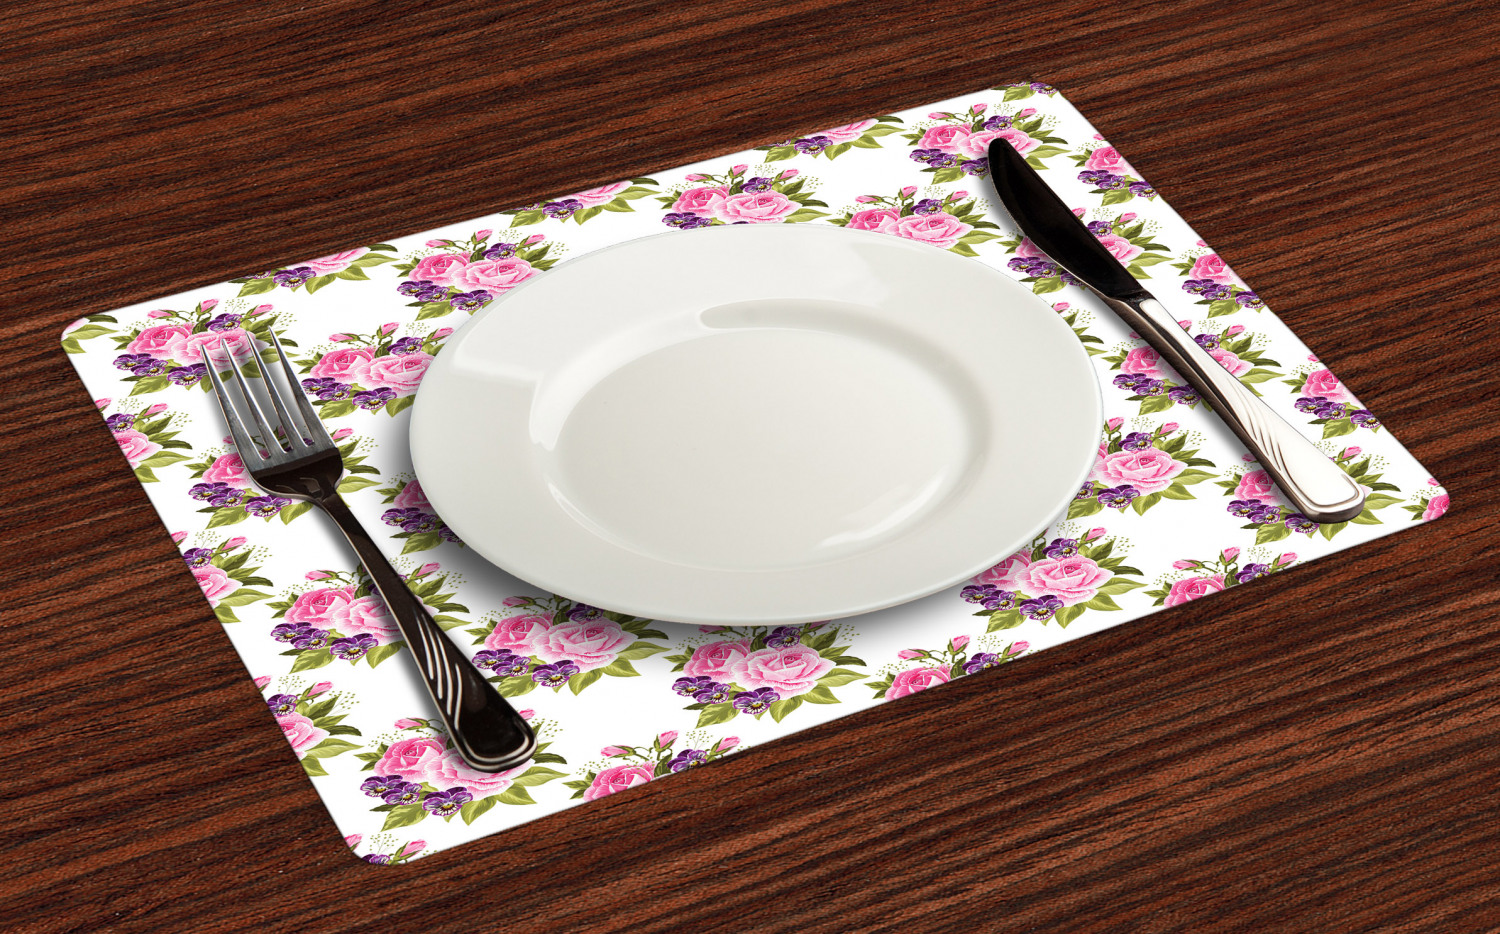 Ambesonne-Flower-Pattern-Placemat-Set-of-4-Fabric-Place-Mats-for-Table-Decor thumbnail 57